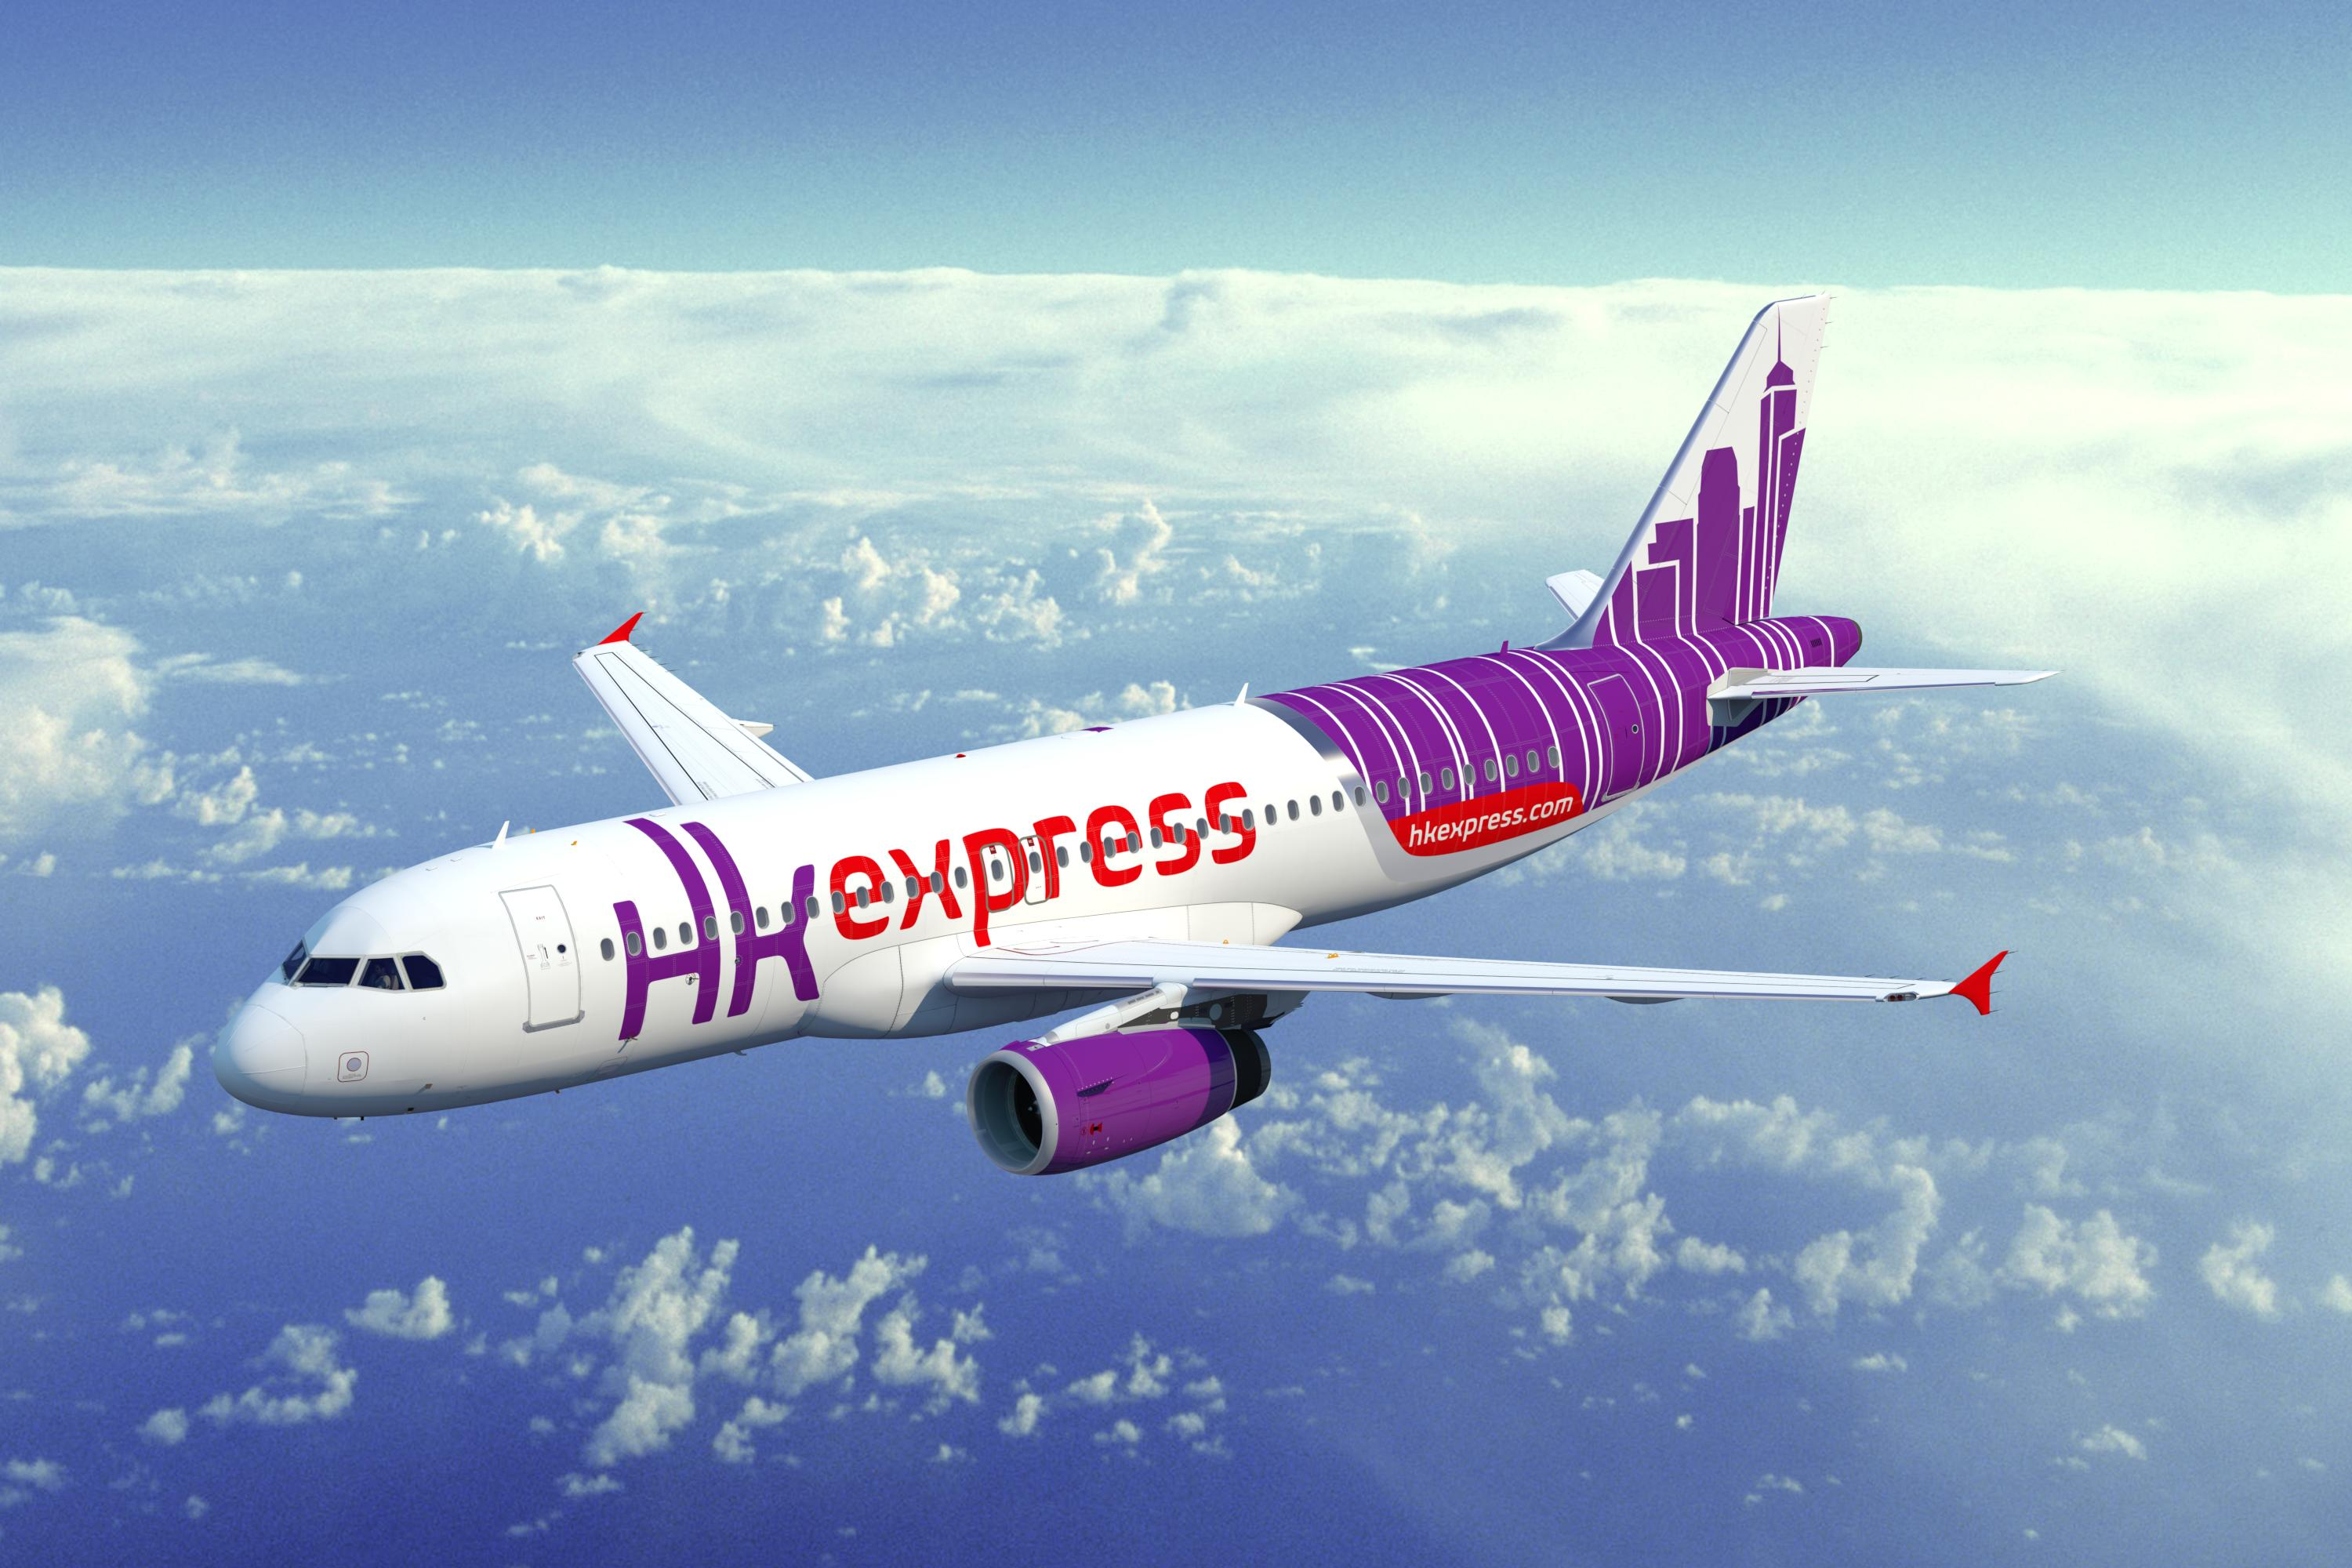 Hong Kong Express Reveal New Identity | TheDesignAir